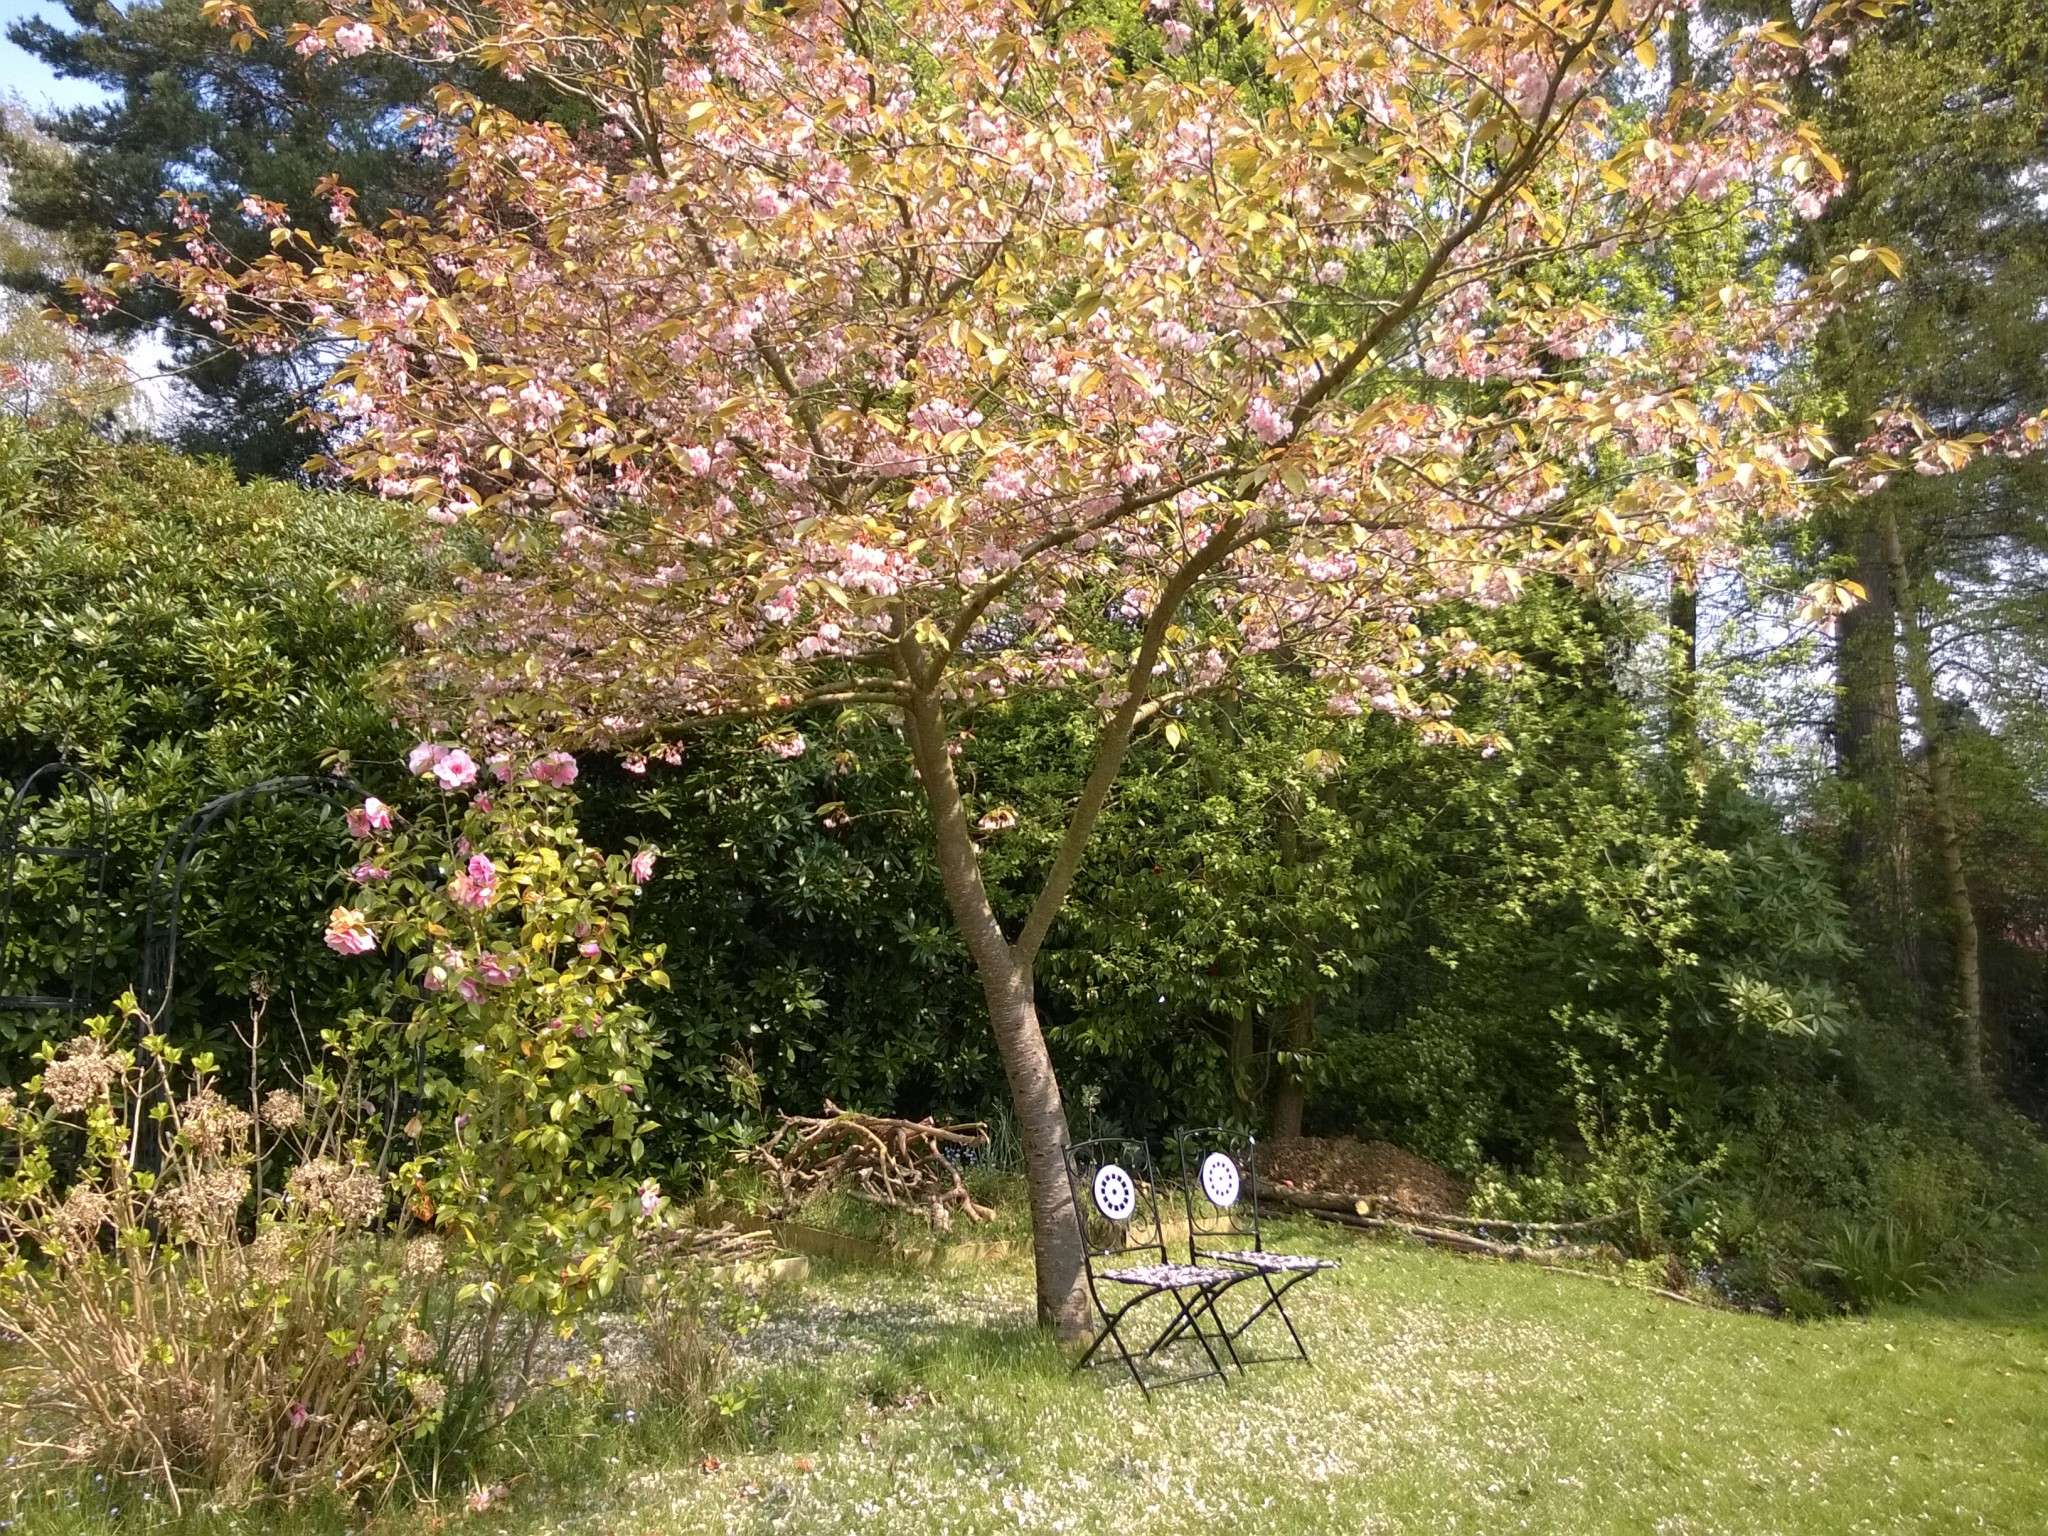 Chairs under the Ornamental Cherry Blossom